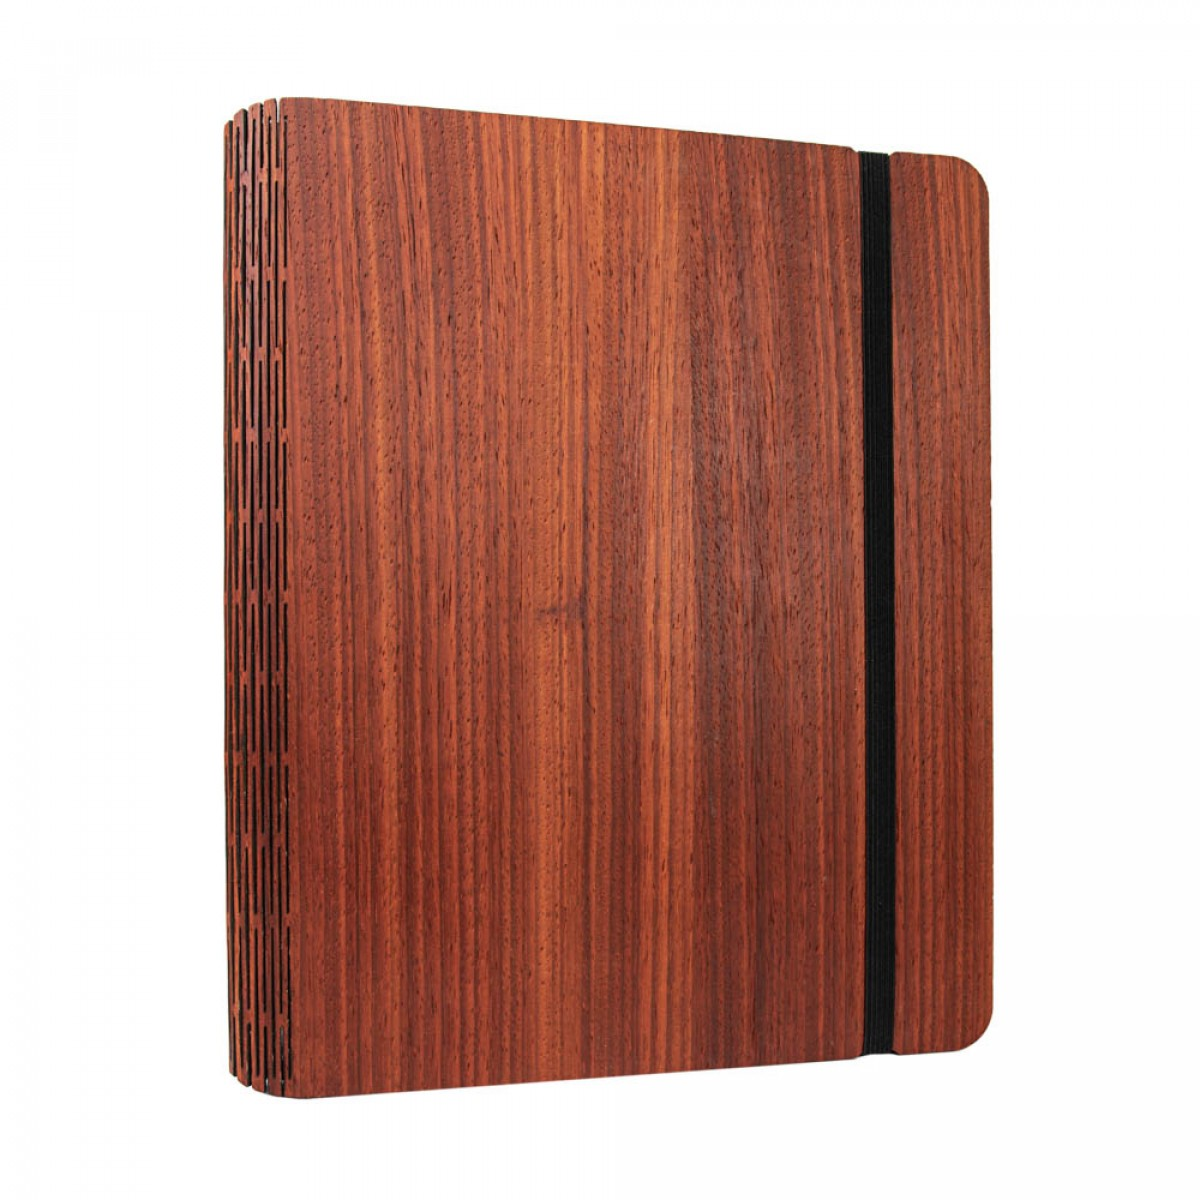 JUNGHOLZ Design WoodCase, Tablet, Padouk, iPad Pro 12.9'' 3.Generation